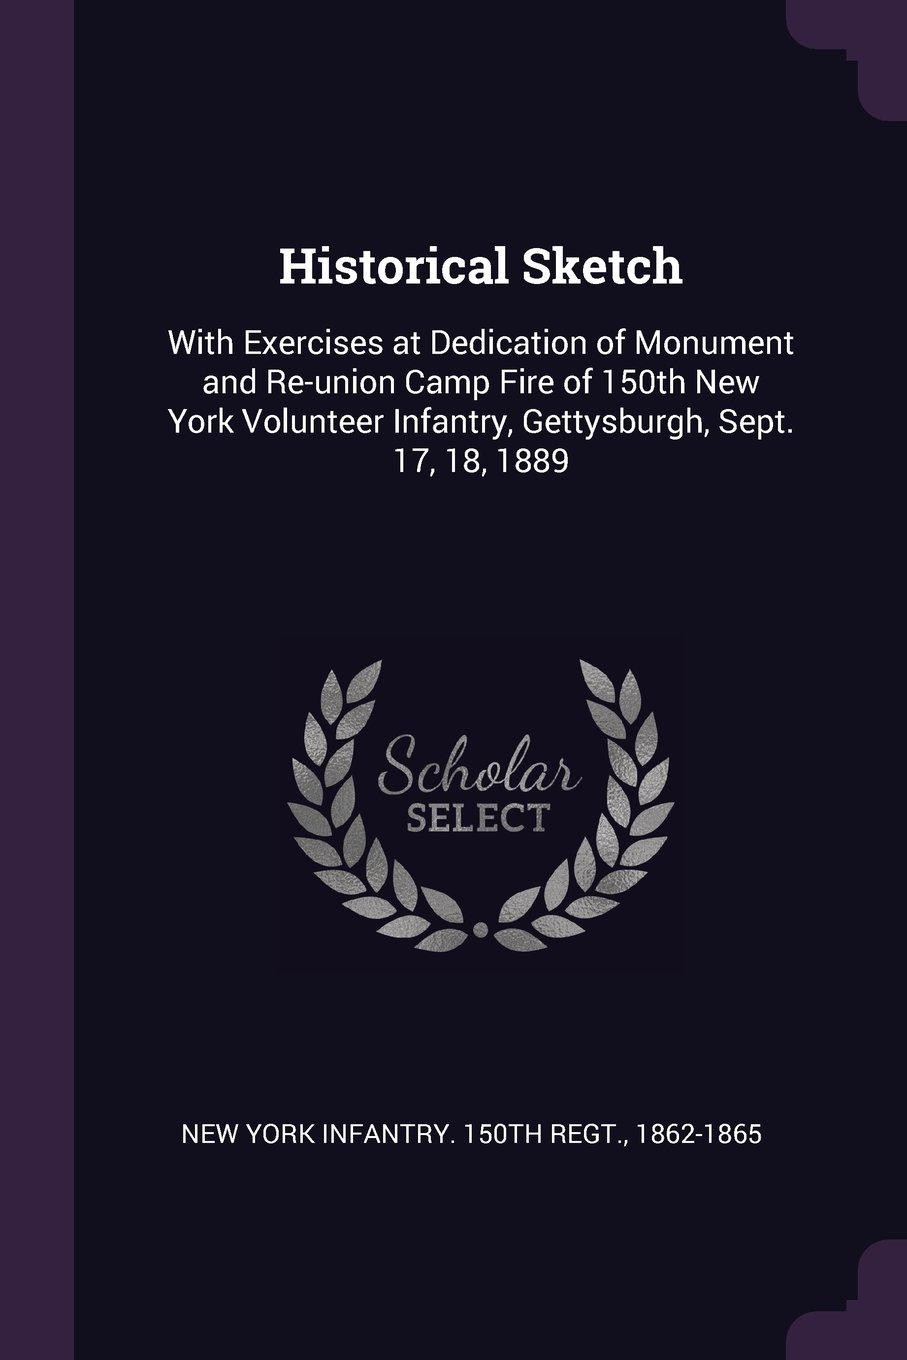 Historical Sketch: With Exercises at Dedication of Monument and Re-union Camp Fire of 150th New York Volunteer Infantry, Gettysburgh, Sept. 17, 18, 1889 pdf